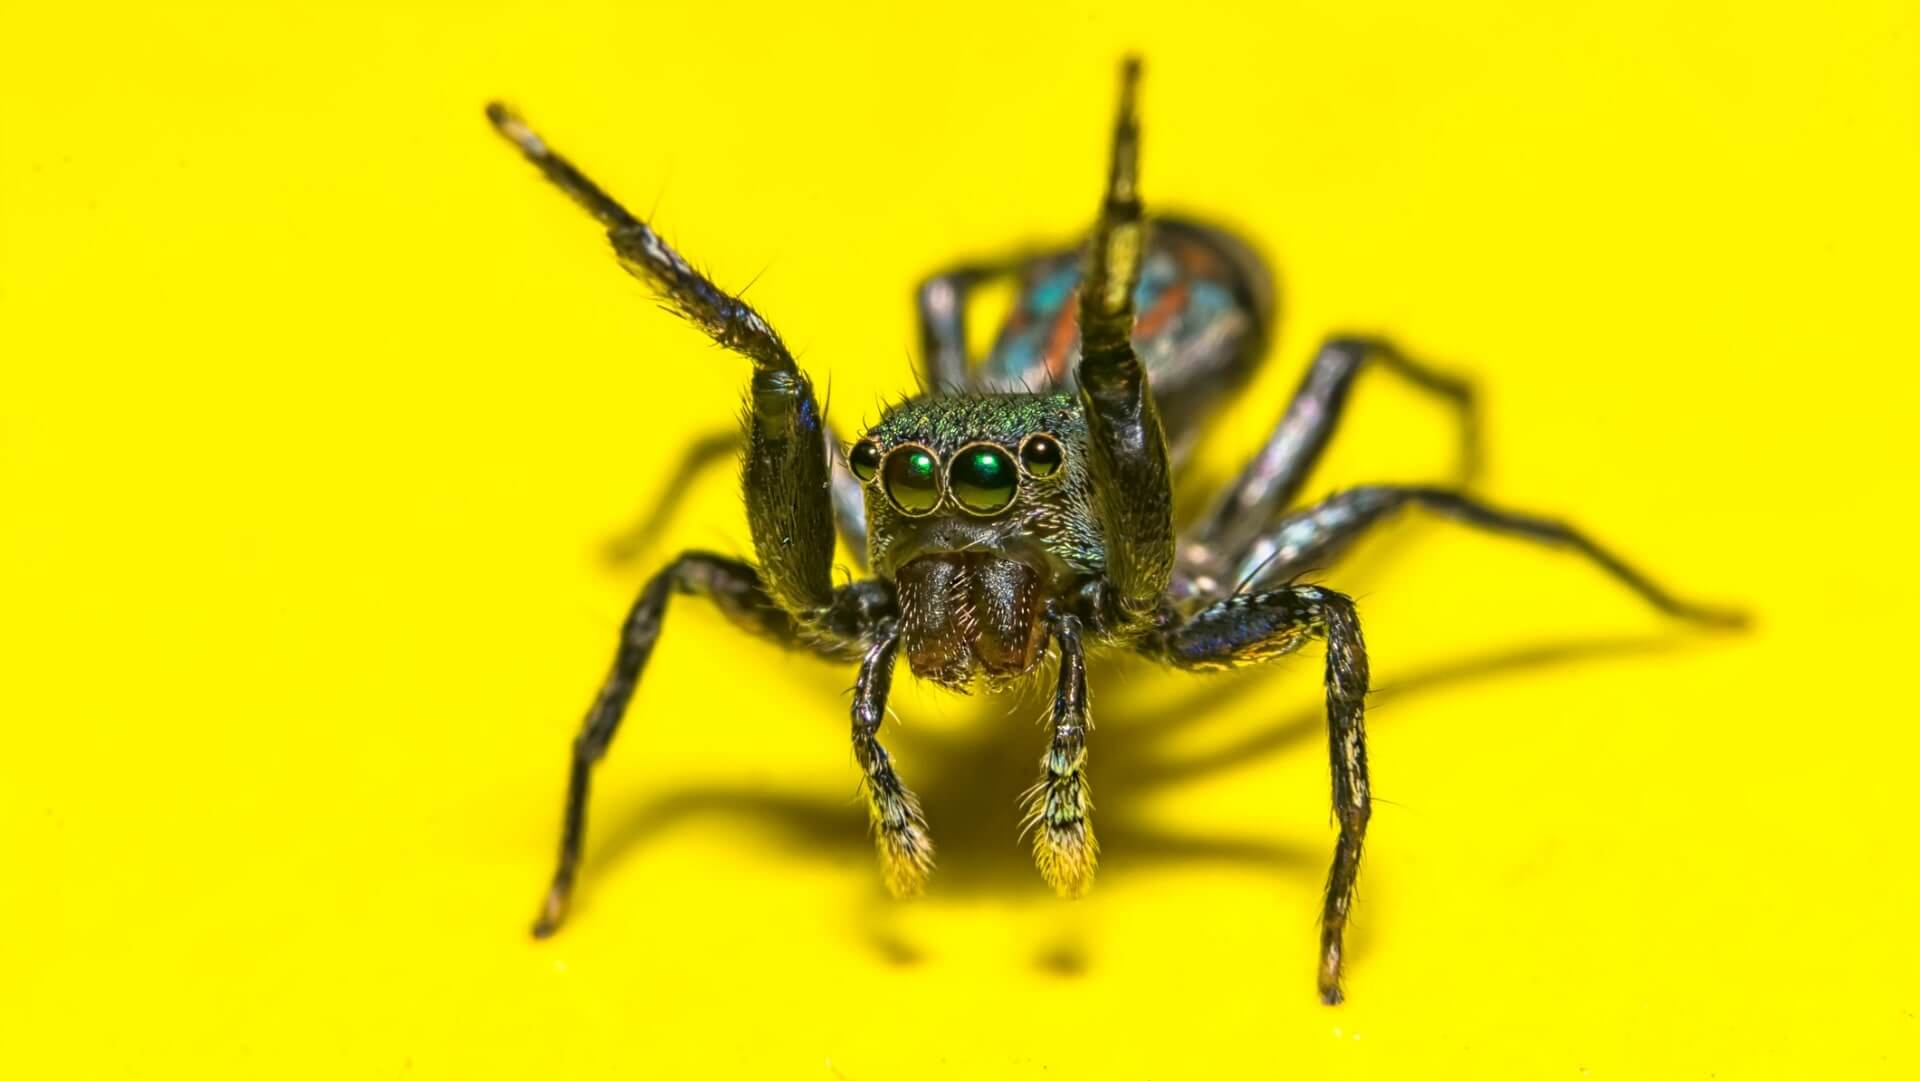 Armor of tomorrow could be derived from these 3 animals